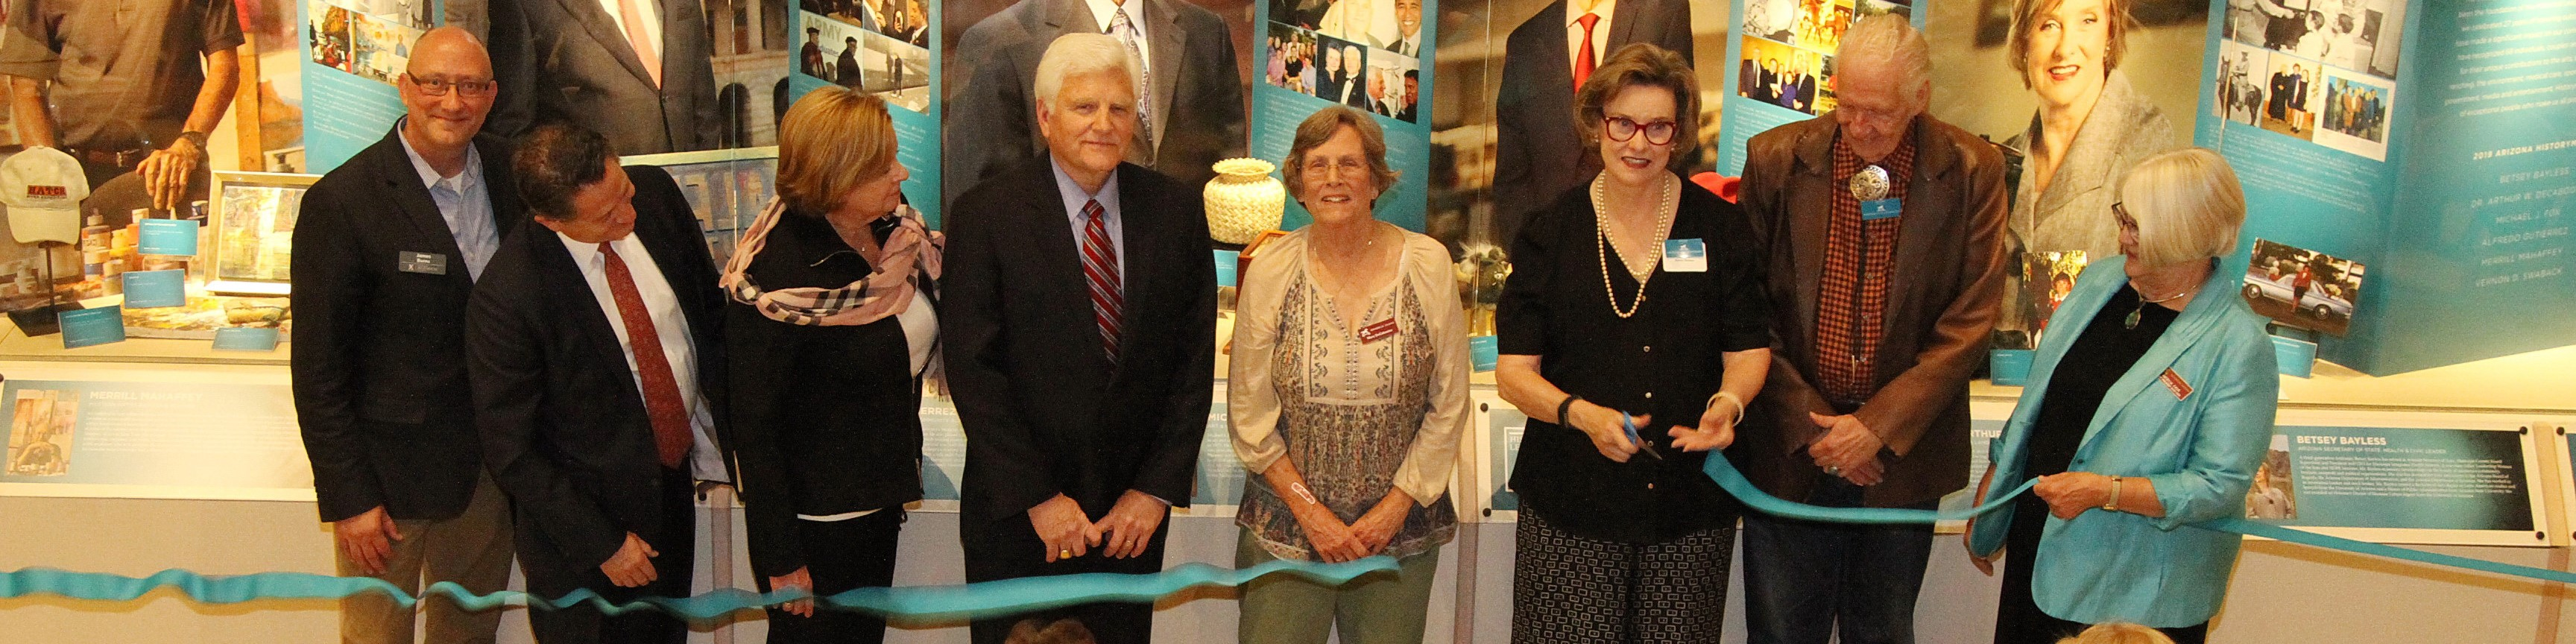 Historical League's 2019 Historymaker Exhibit Opening